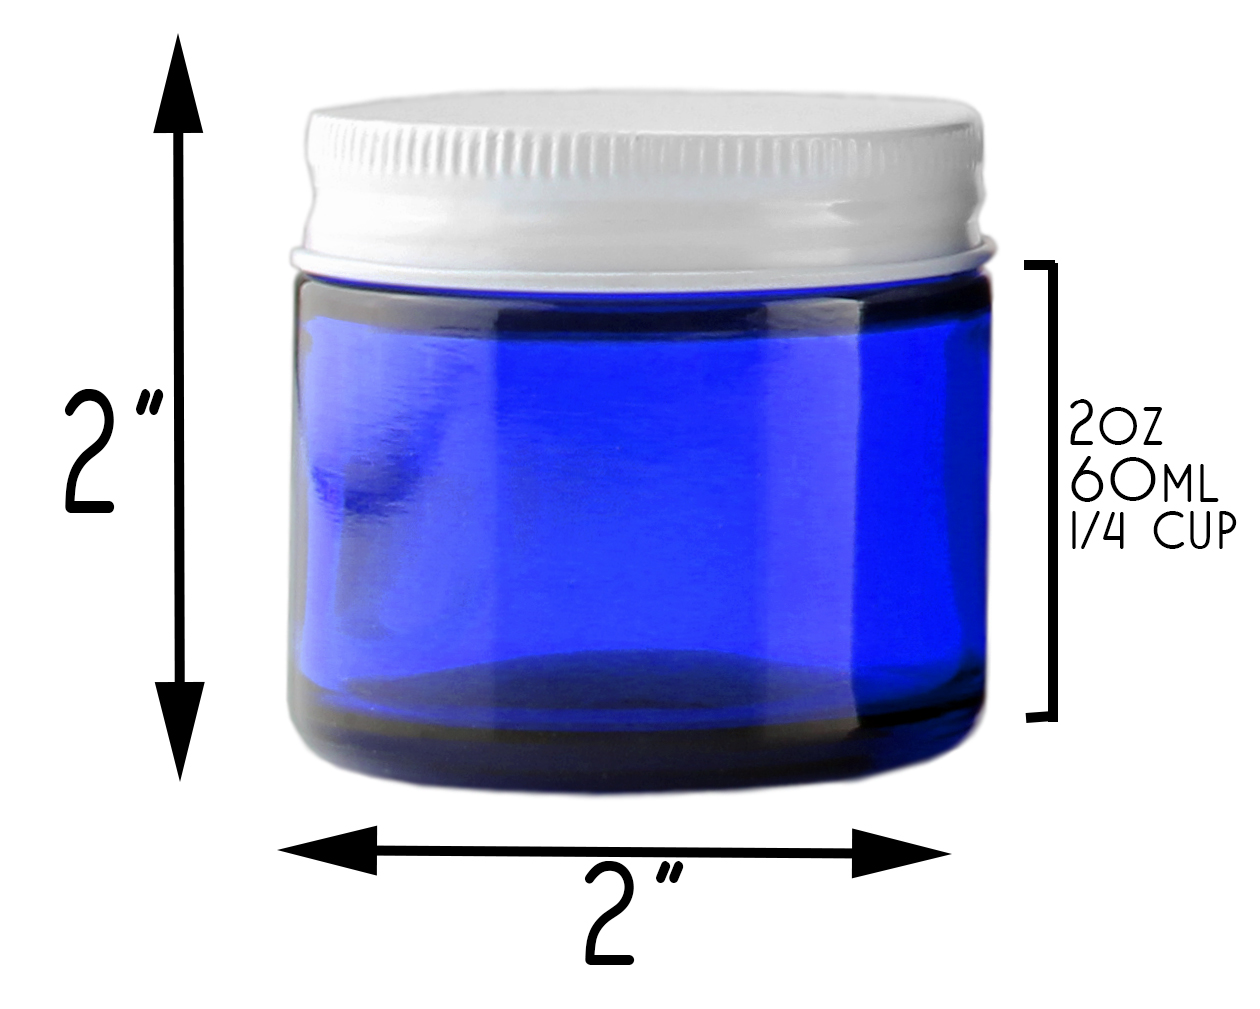 B018SFIGXG - 2 Oz Cobalt Blue Glass Straight Sided Jars, Metal Lids Included, (12 Pack) 4